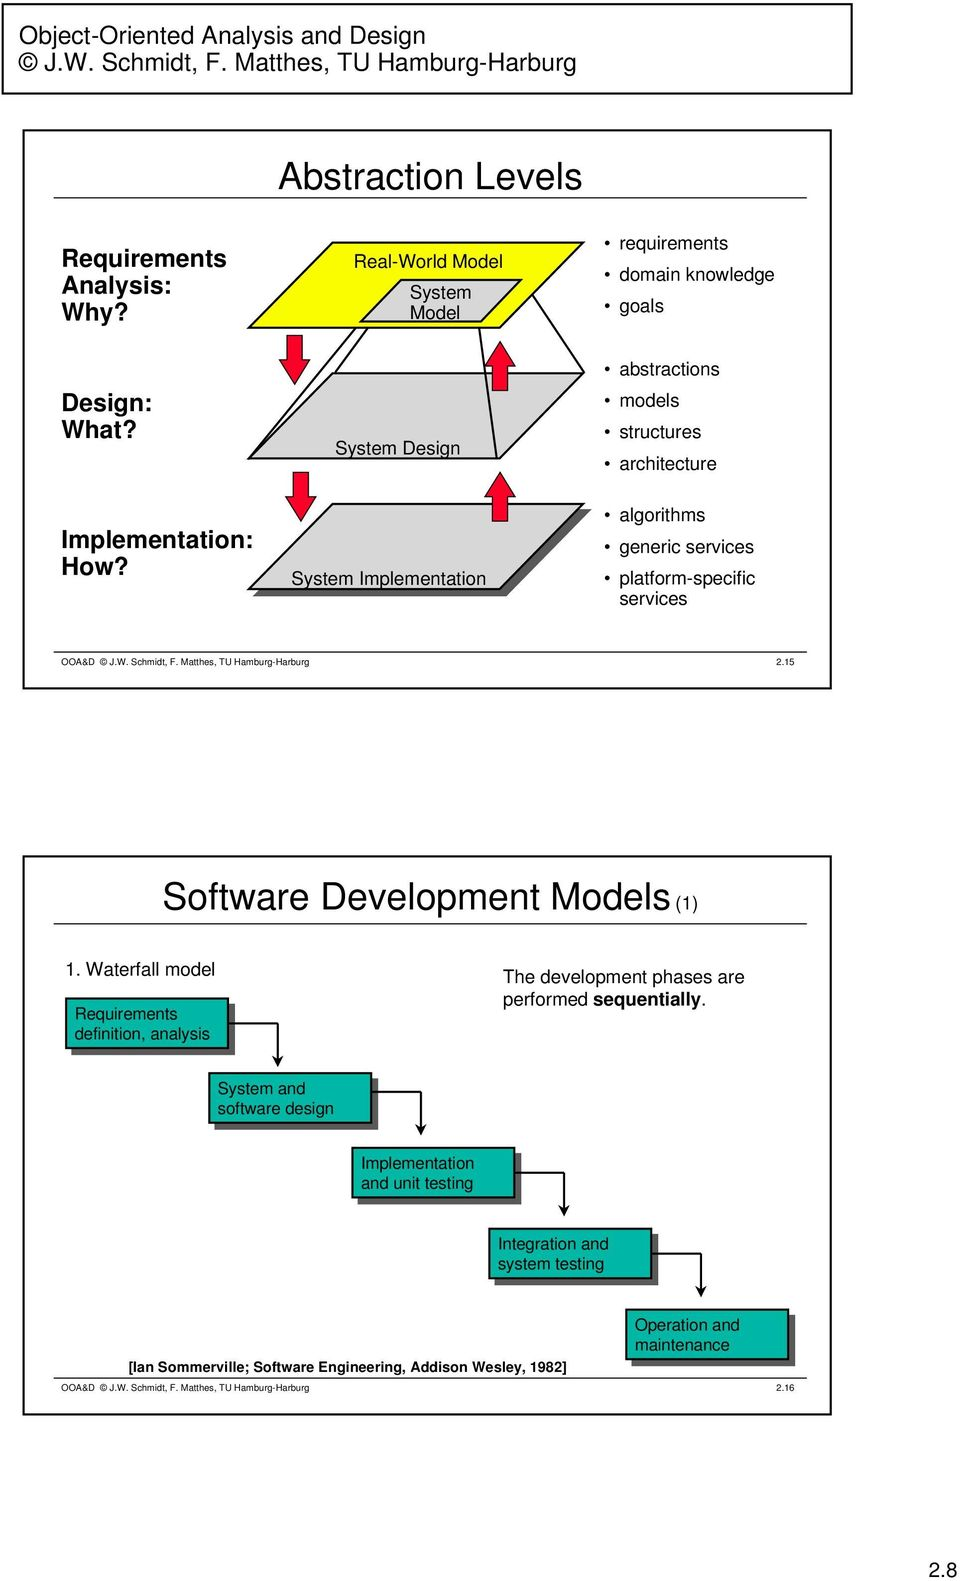 15 Software Development Models (1) 1. Waterfall model Requirements Requirements definition, definition, analysis analysis The development phases are performed sequentially.